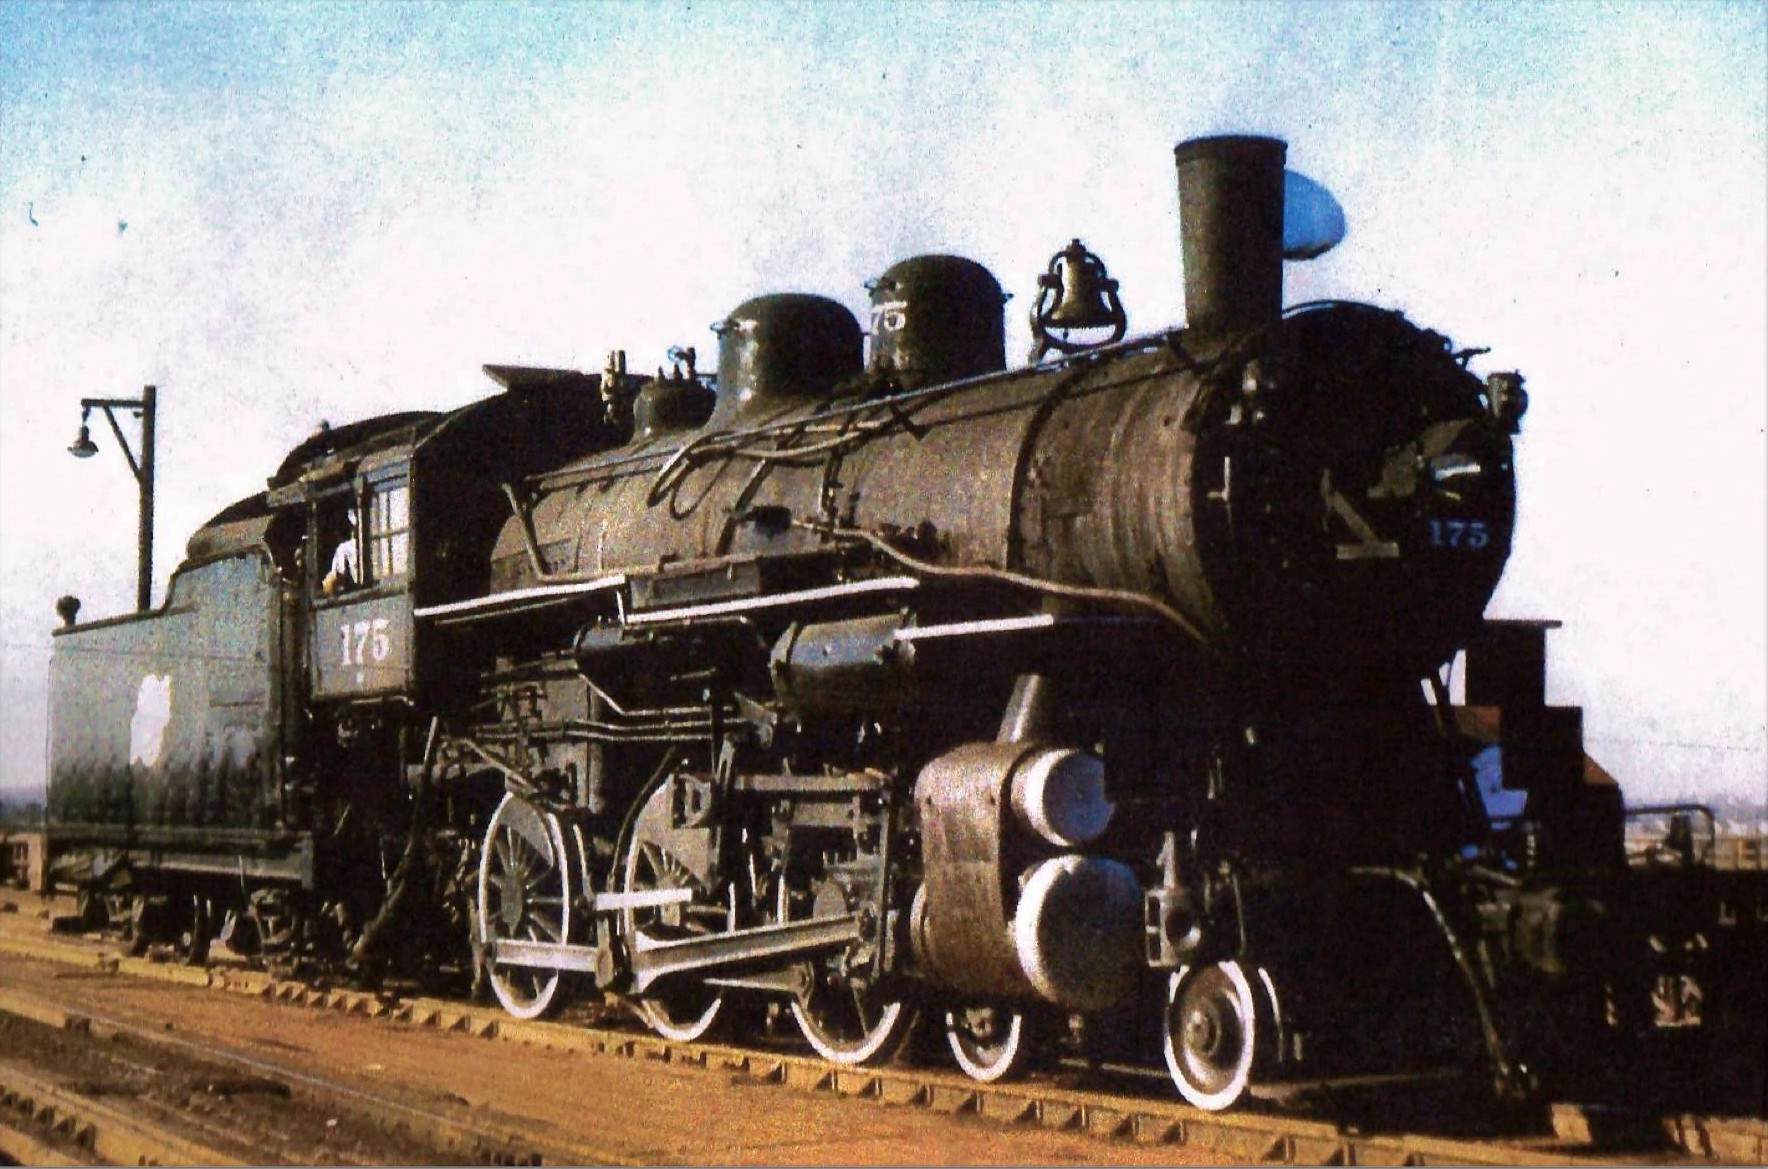 A color photograph of Chicago and North Western engine no. 175, from about 1908.